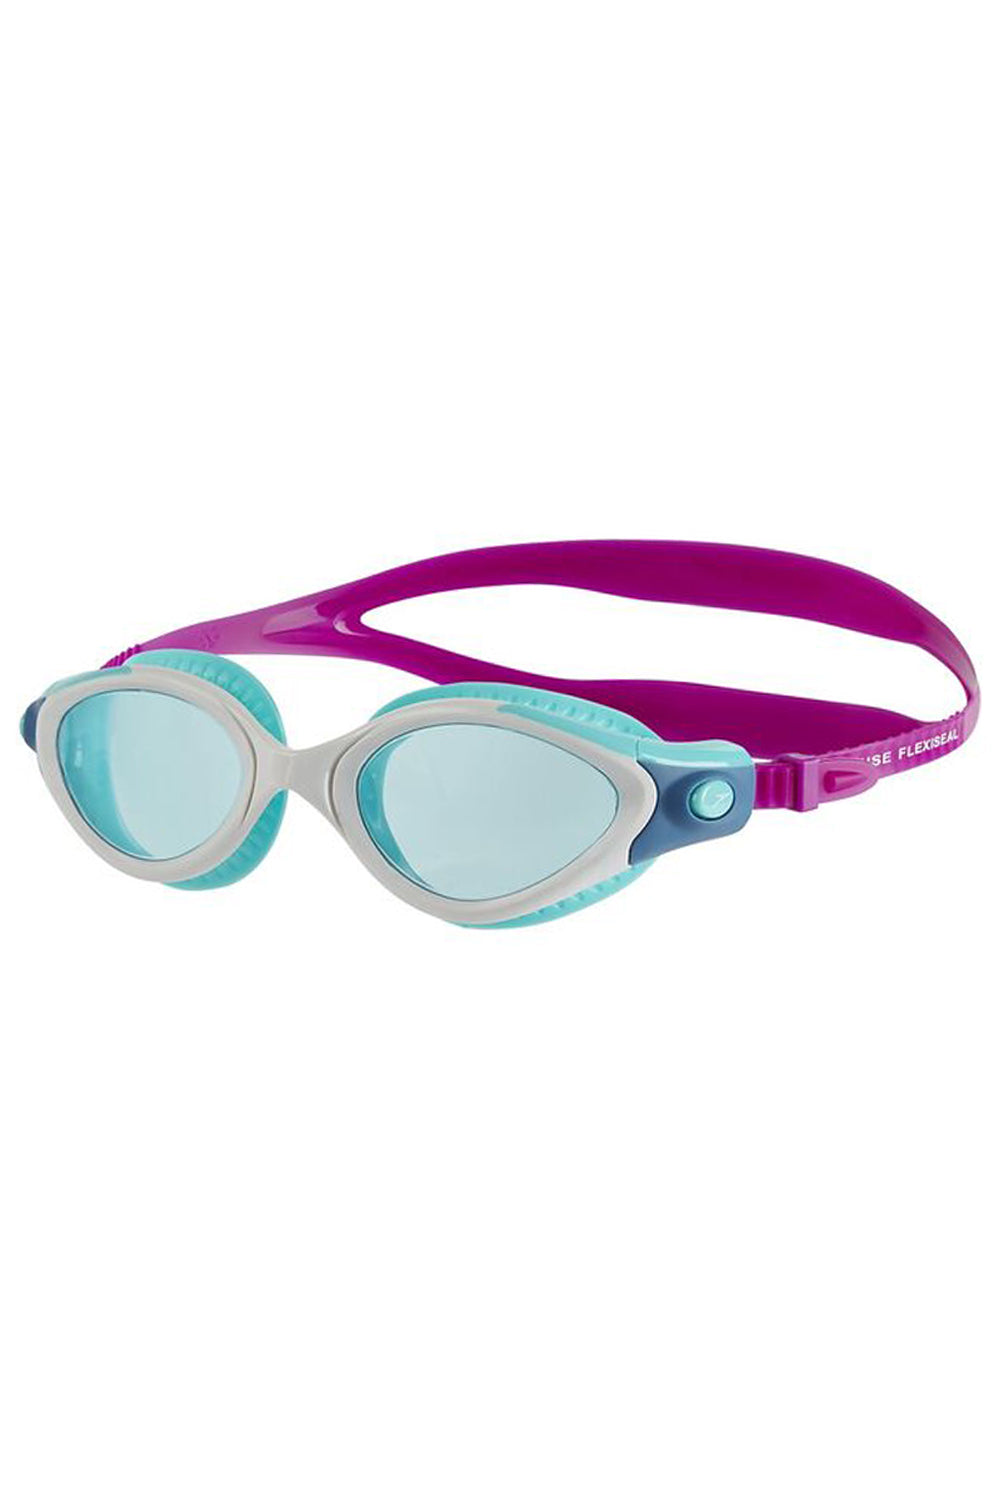 Speedo Futura Biofuse Googles - Women's